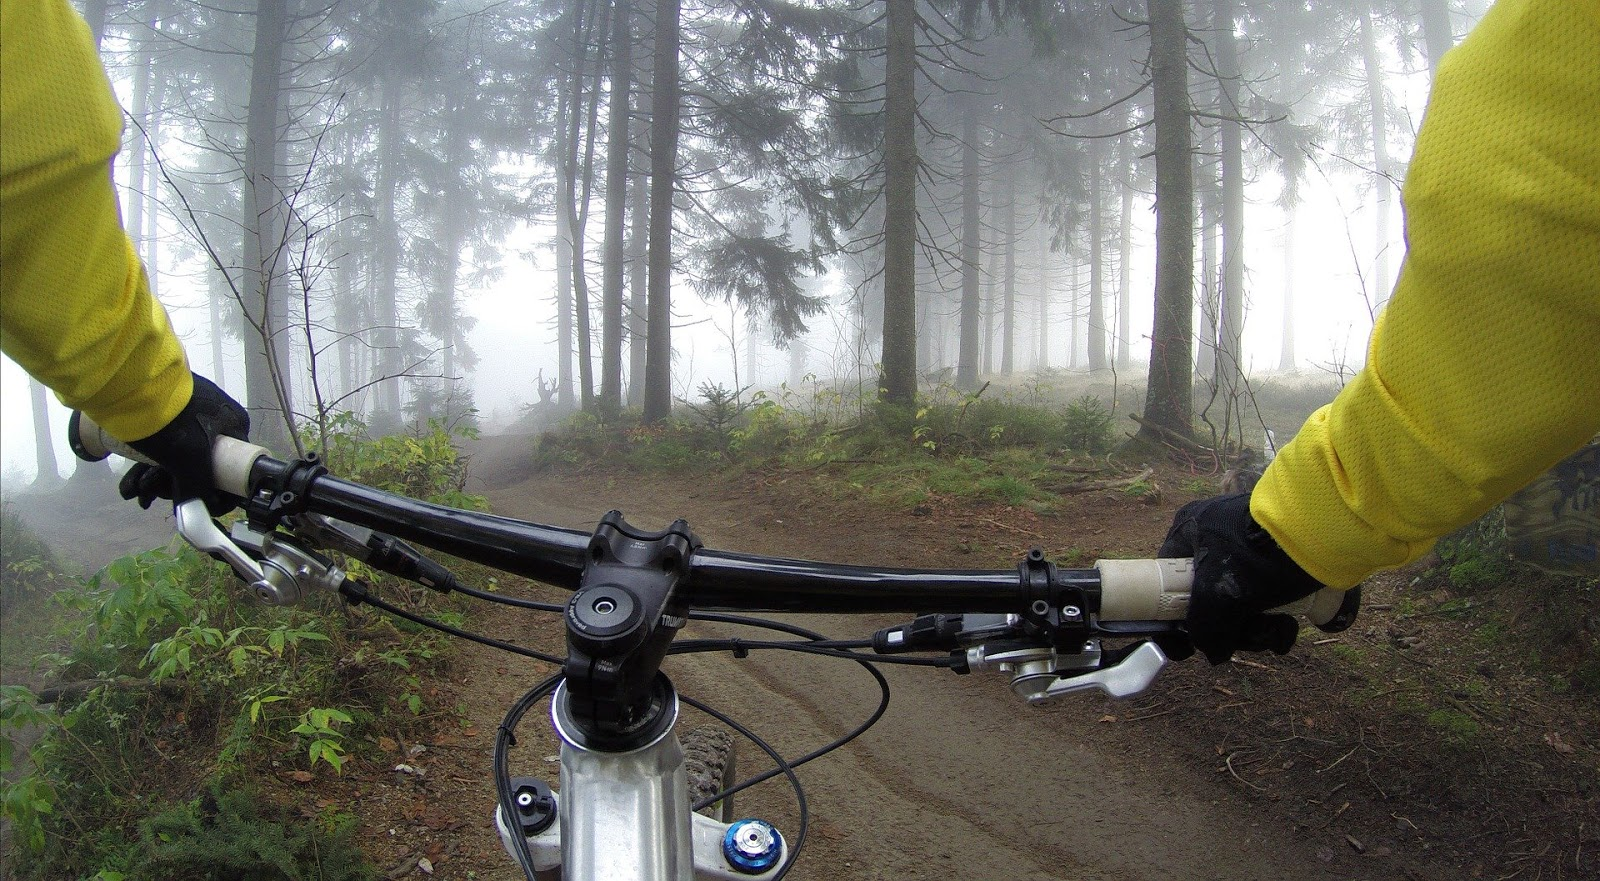 first person view of someone riding a bike in a forest